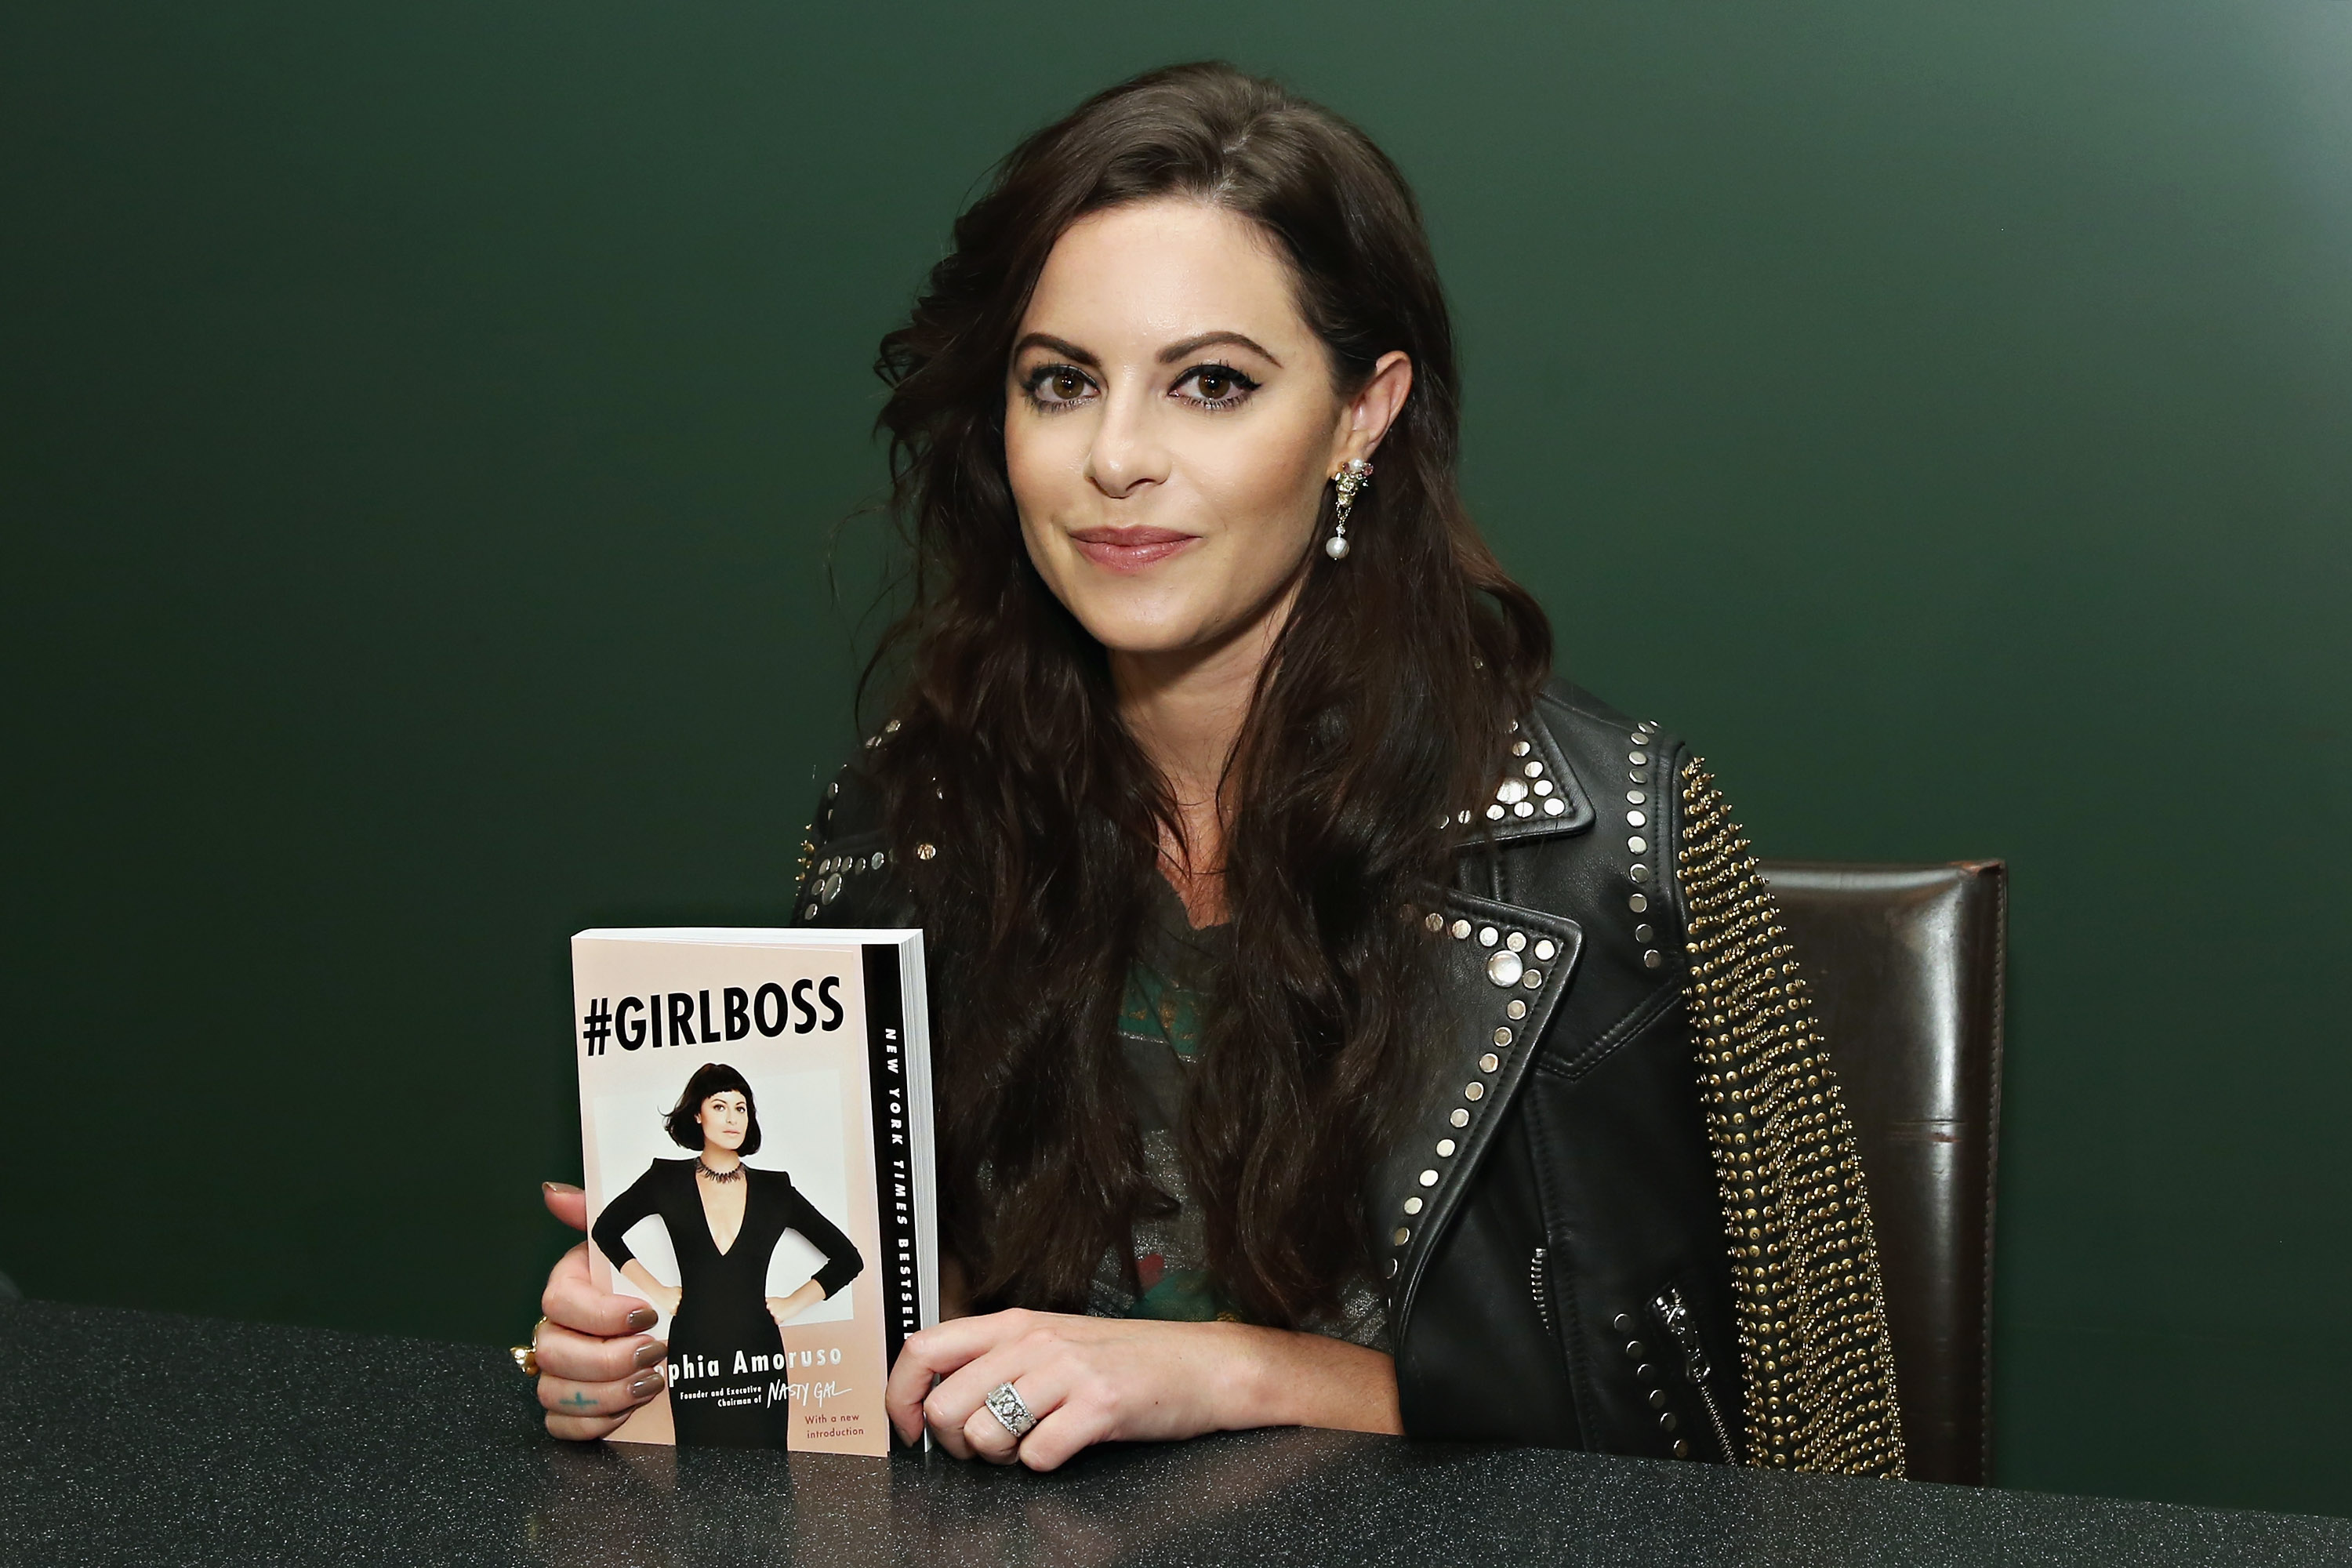 Netflix Is Making a Show About #Girlboss Sophia Amoruso | Fortune